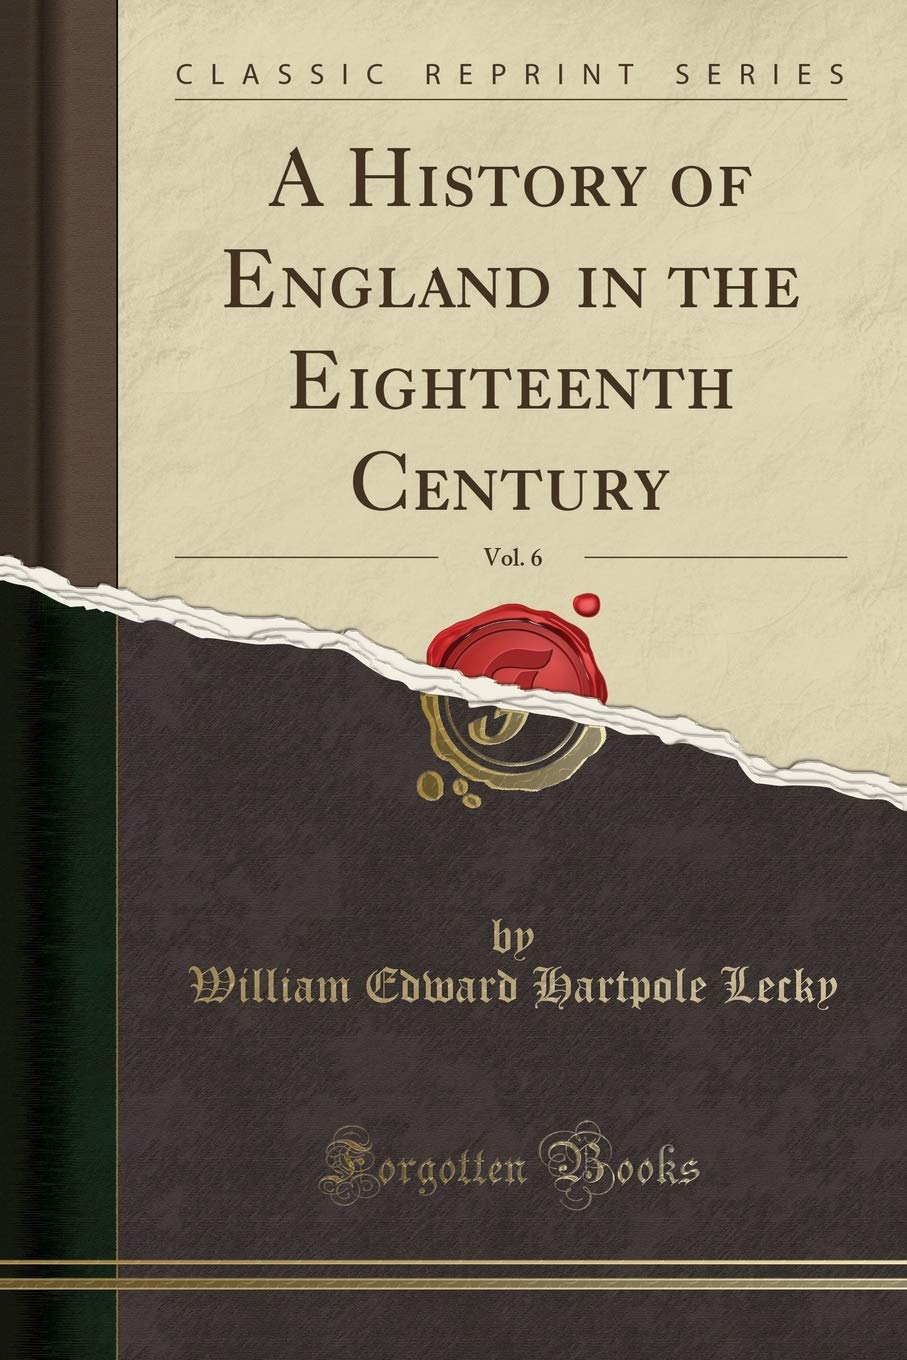 A History of England in the Eighteenth Century - Volume I